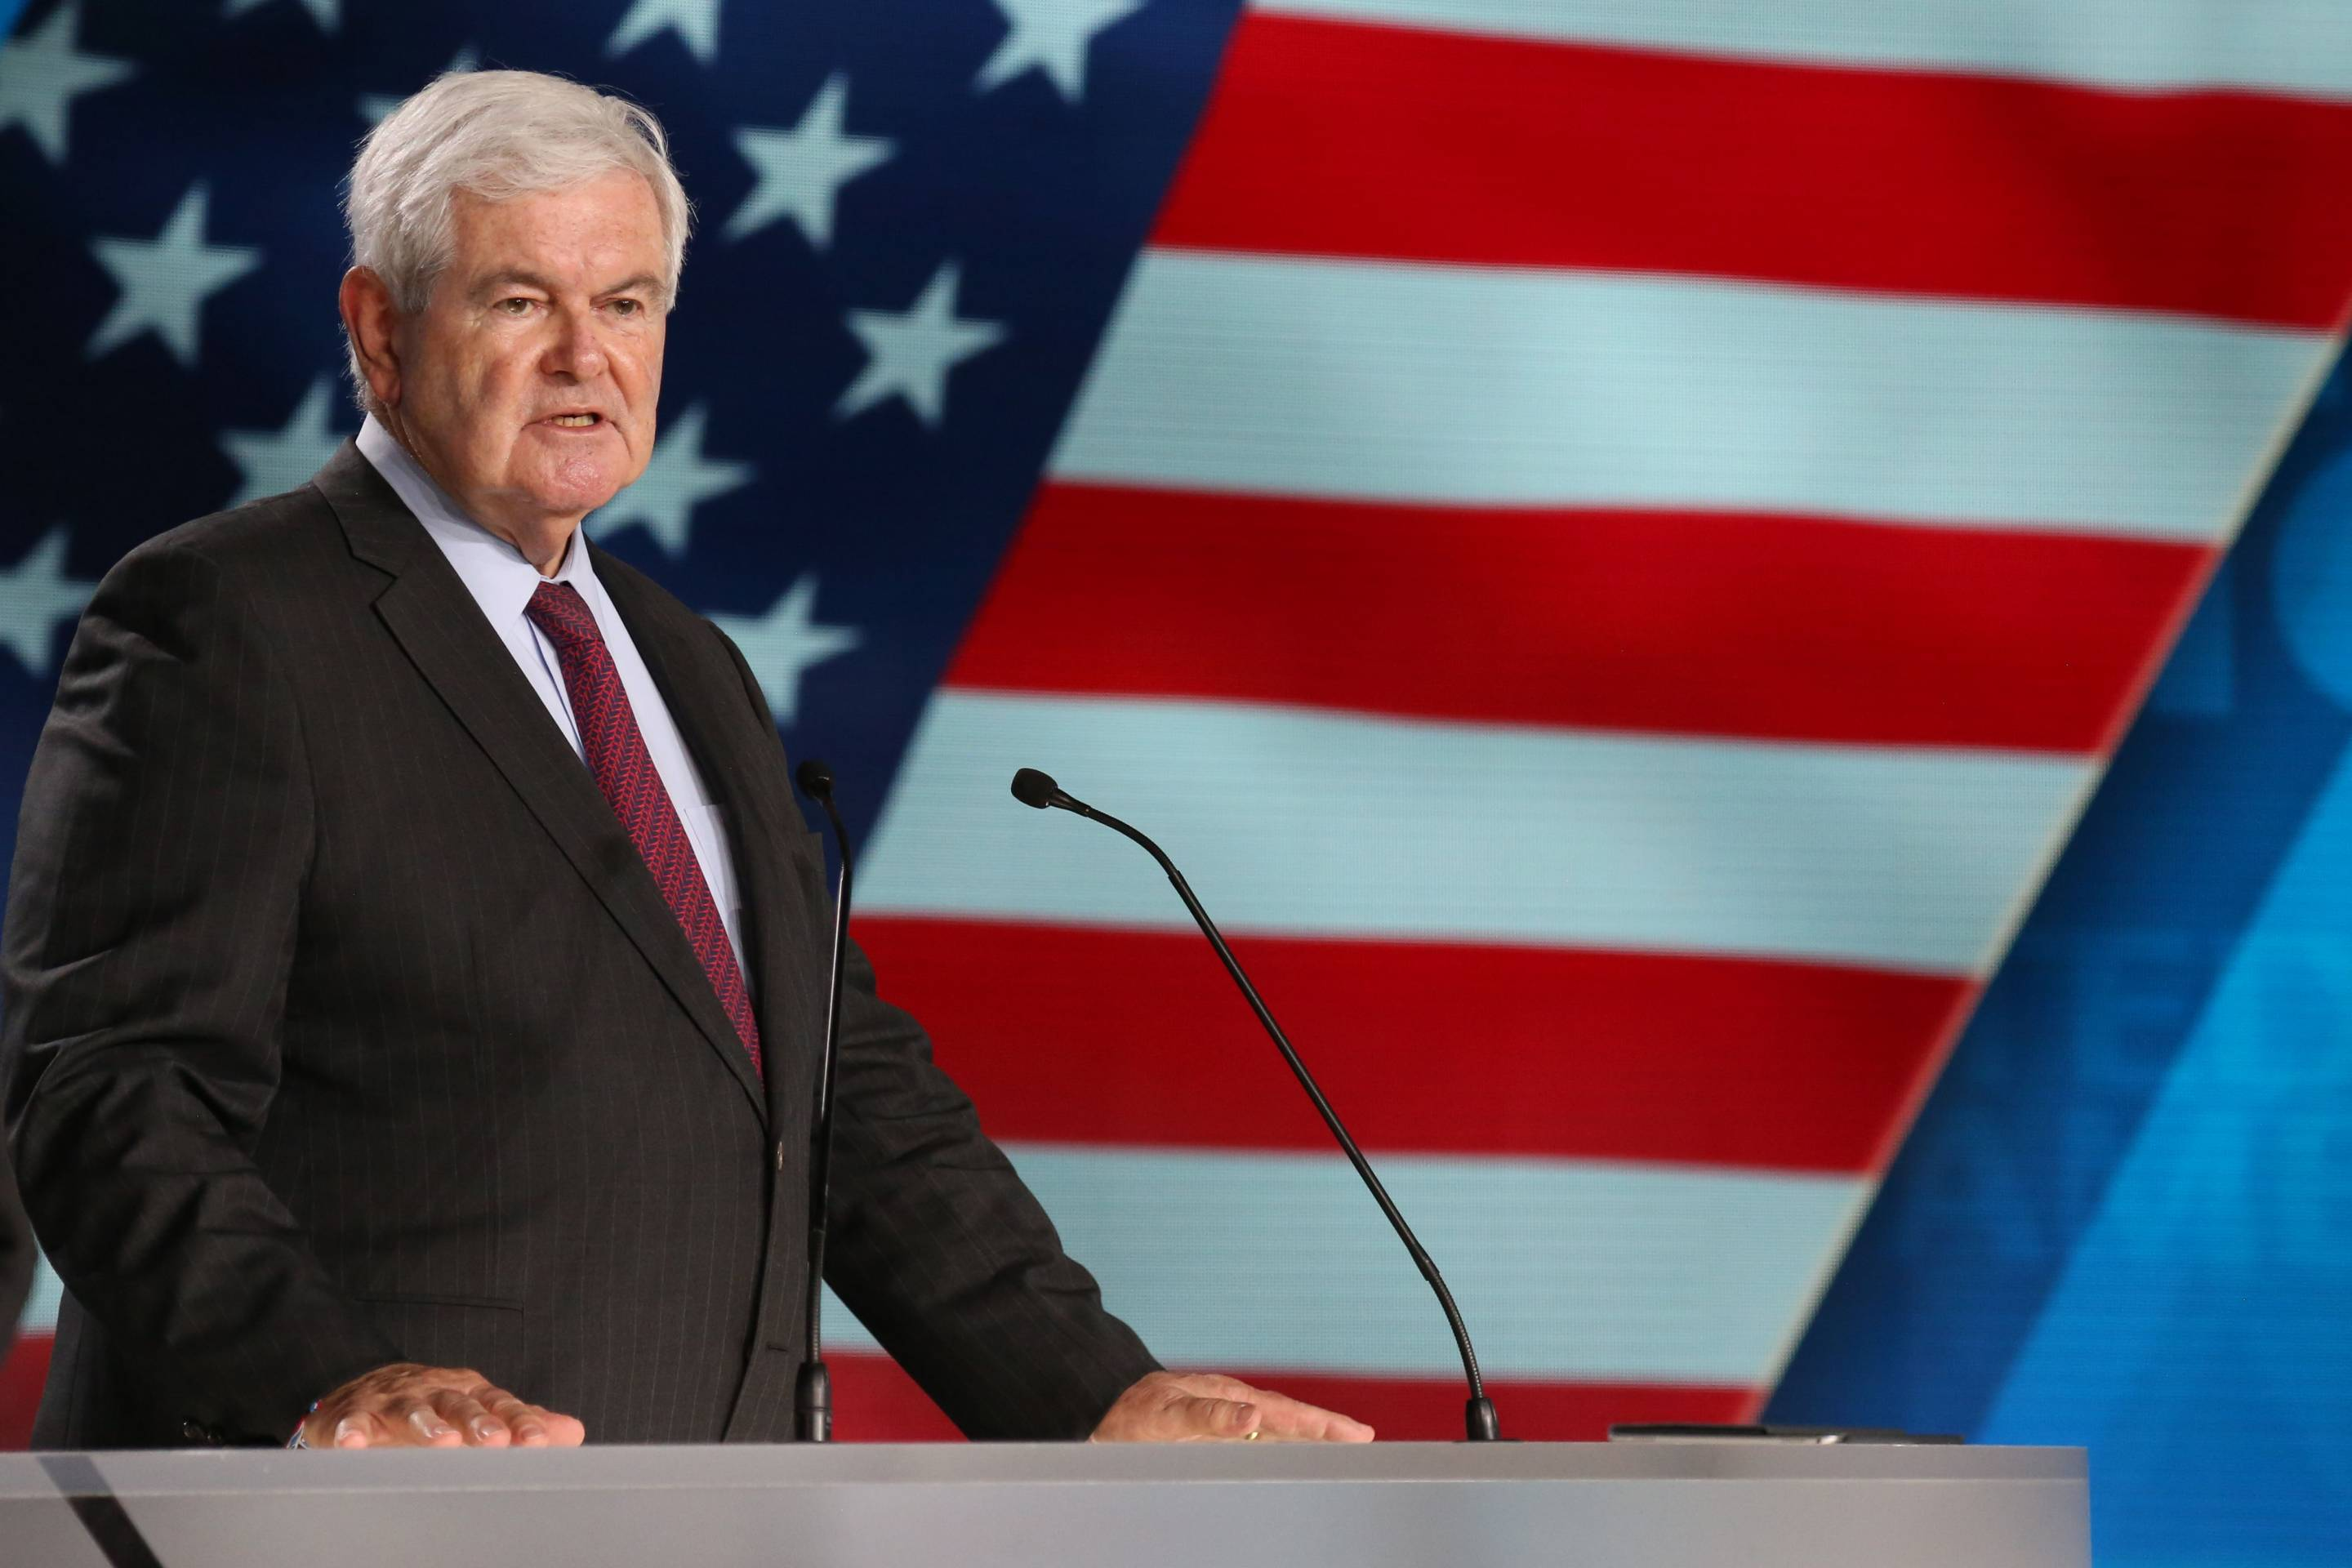 Why Newt Gingrich Has Been Complimenting High-Level Democrats ...